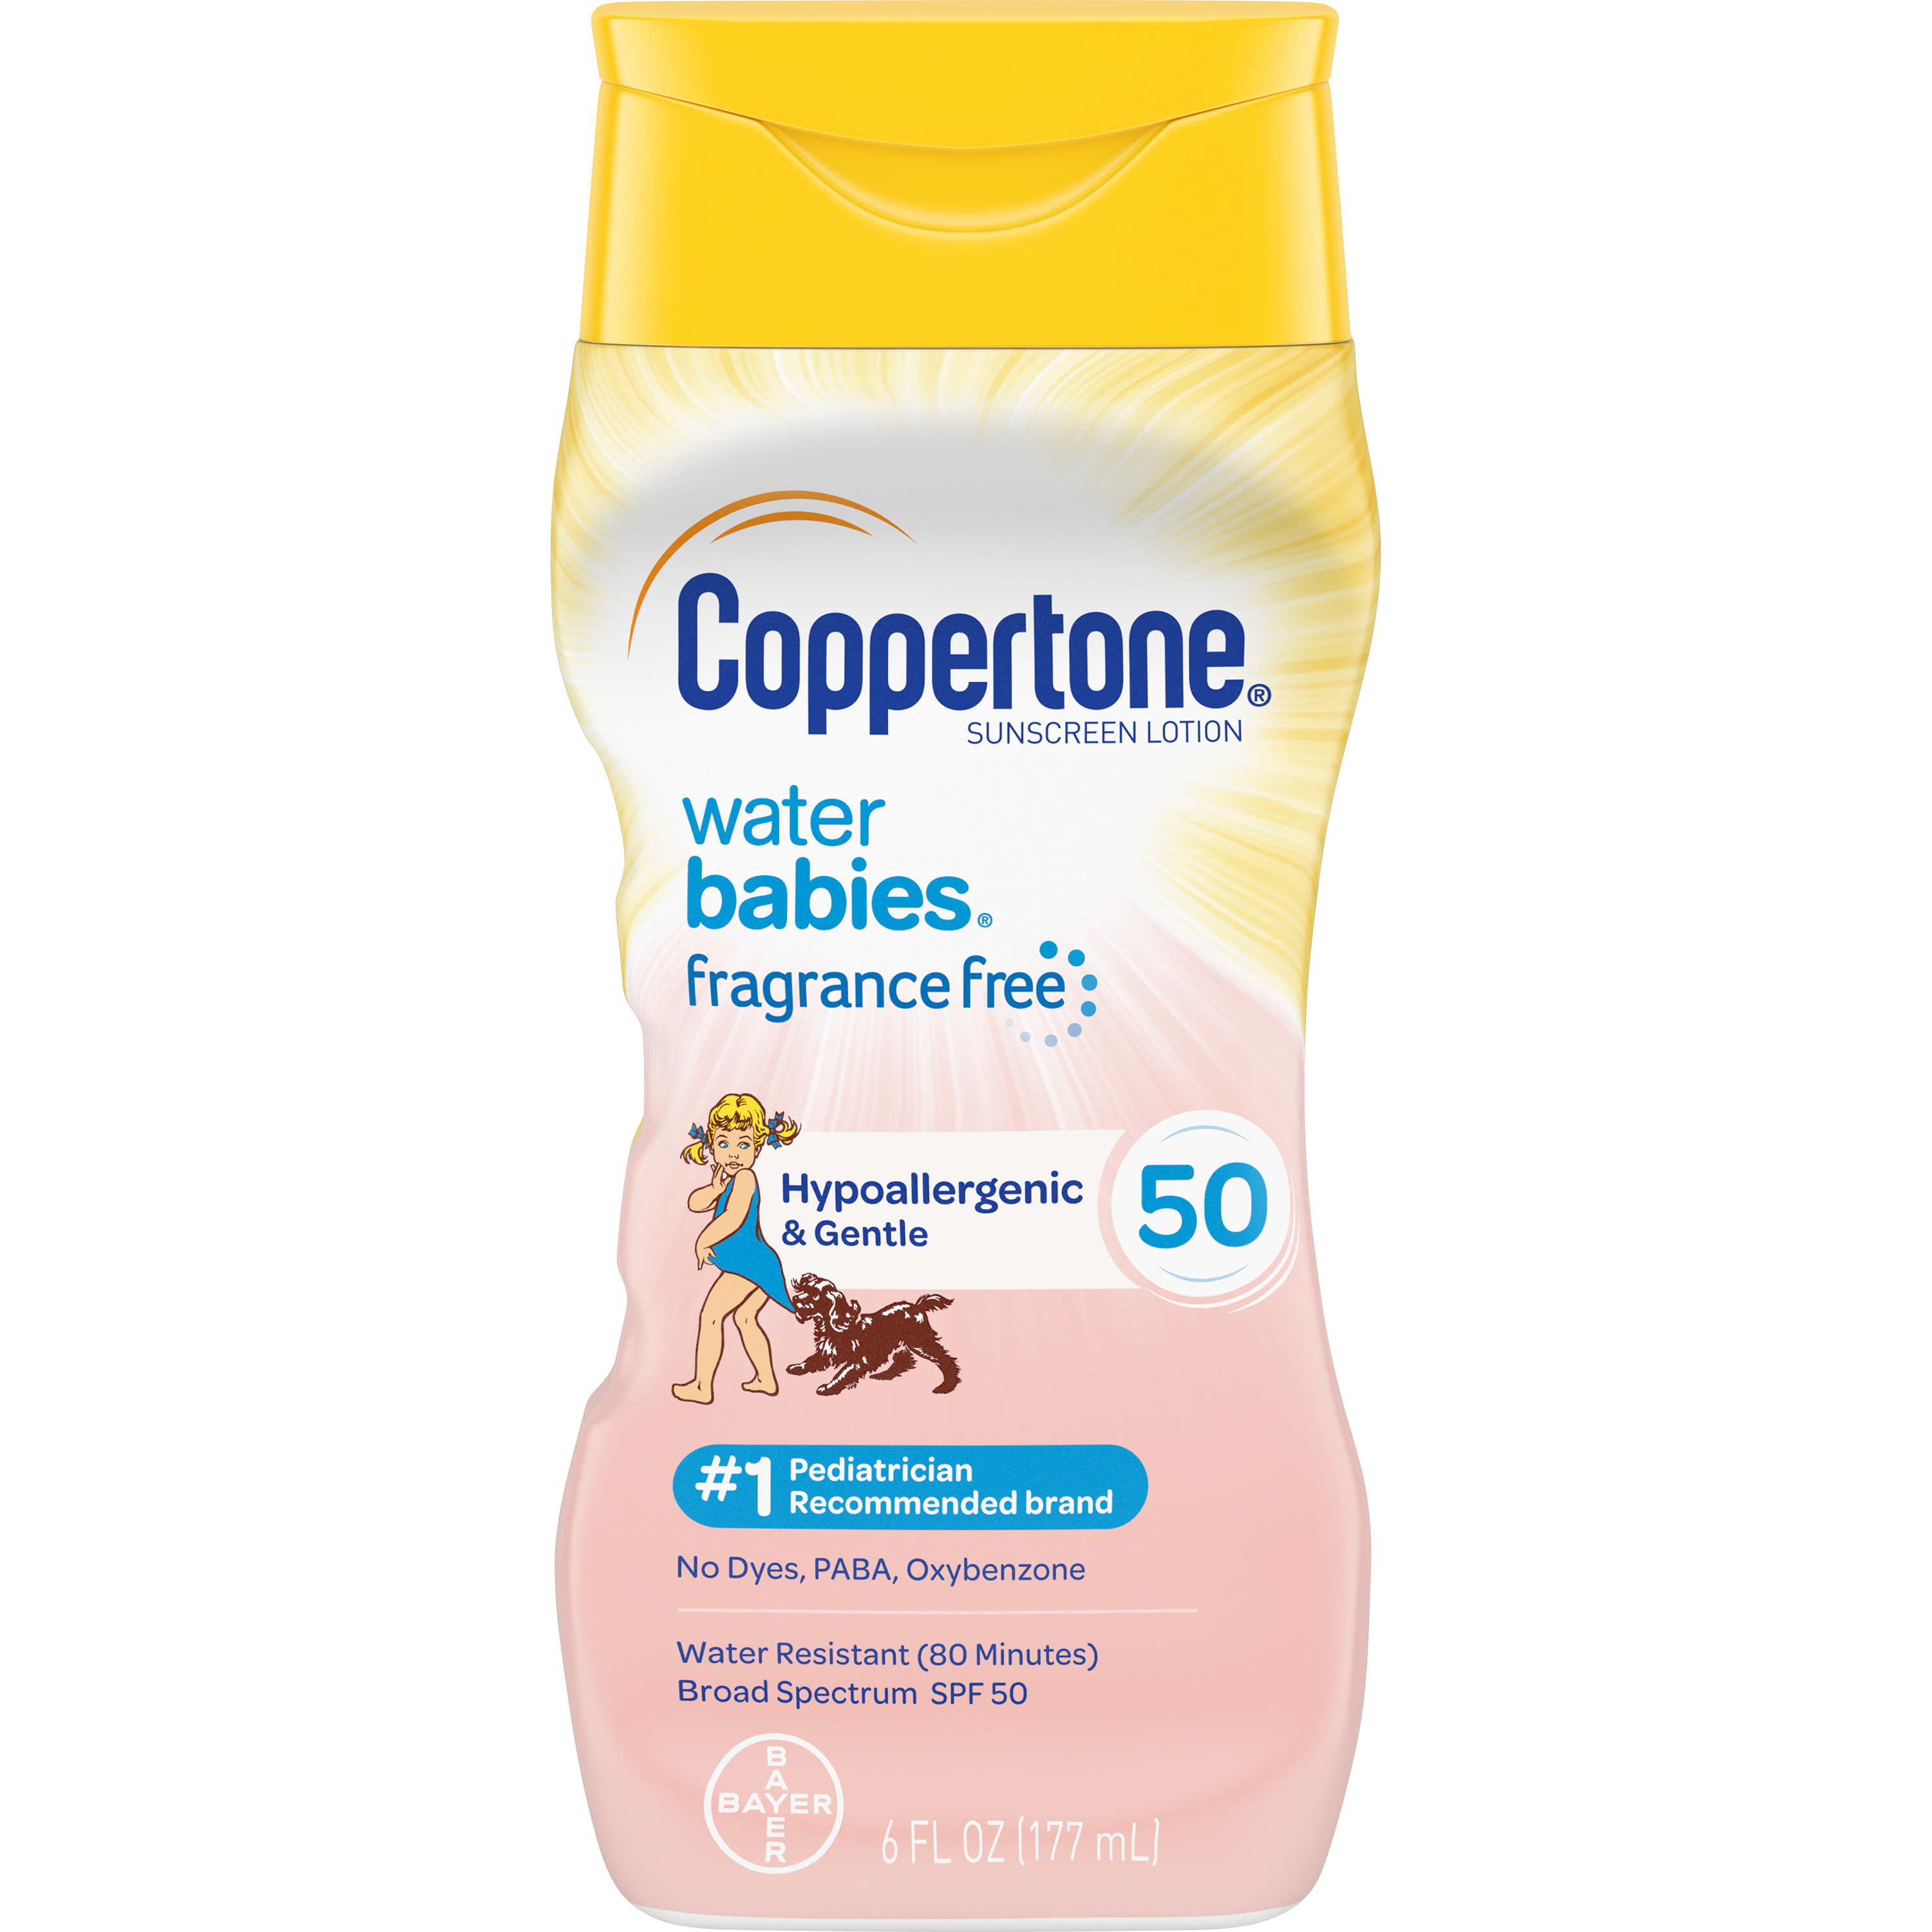 Coppertone WaterBABIES Sunscreen Fragrance Free Lotion SPF 50 6 oz